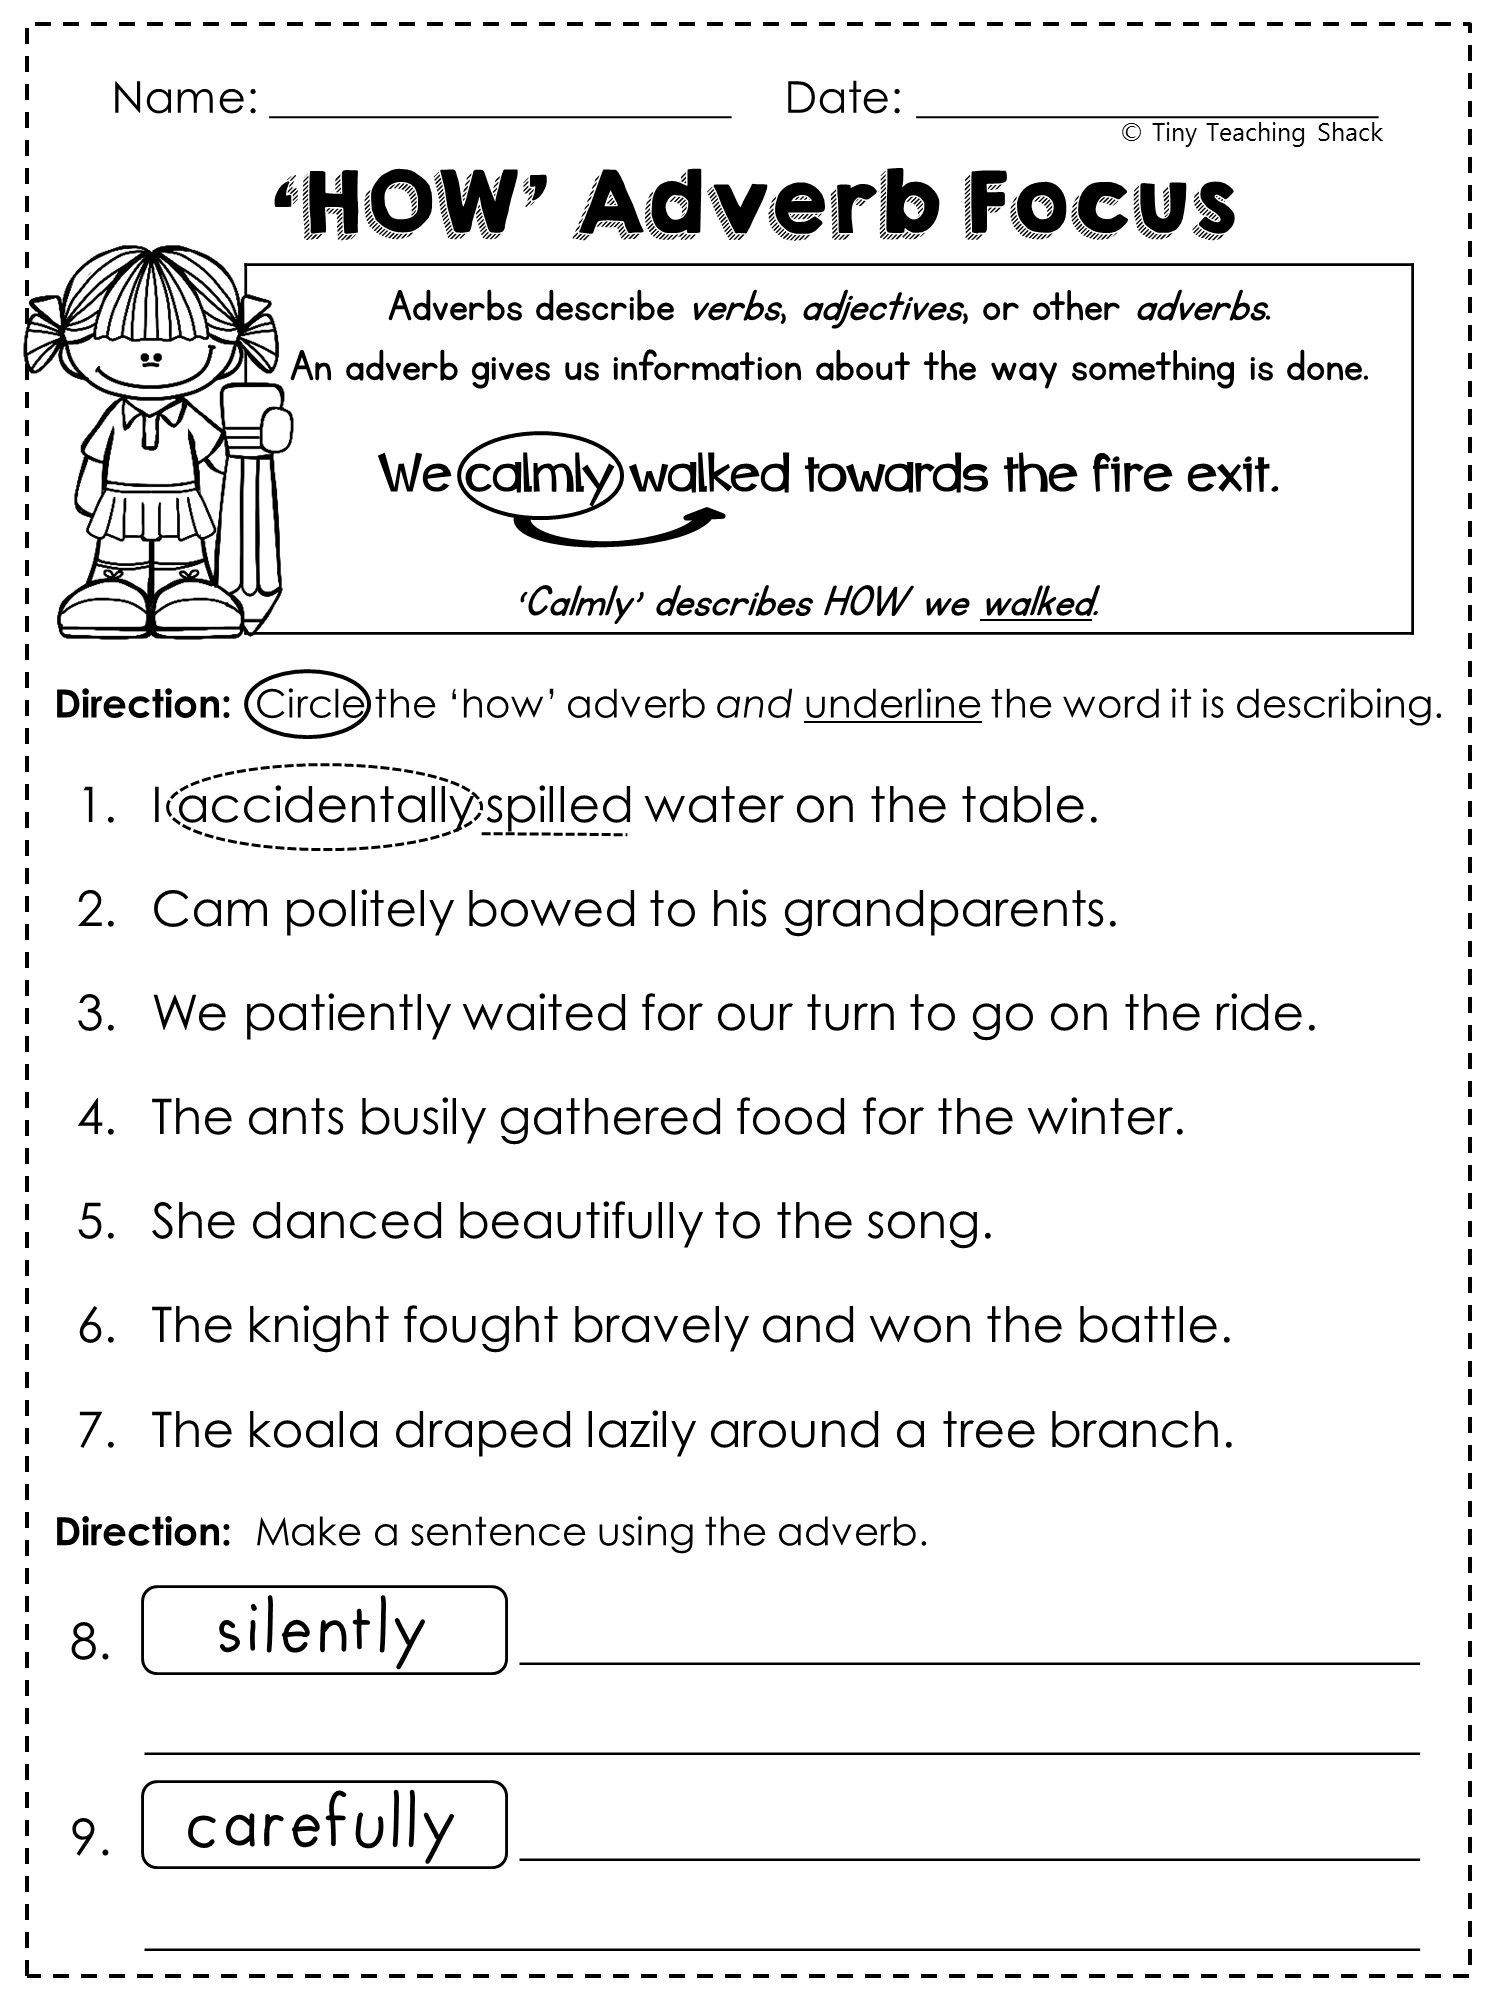 Grade 6 Printable Worksheets Beautiful Grade 6 English Worksheets | Free Printable Worksheets On Adverbs For Grade 5